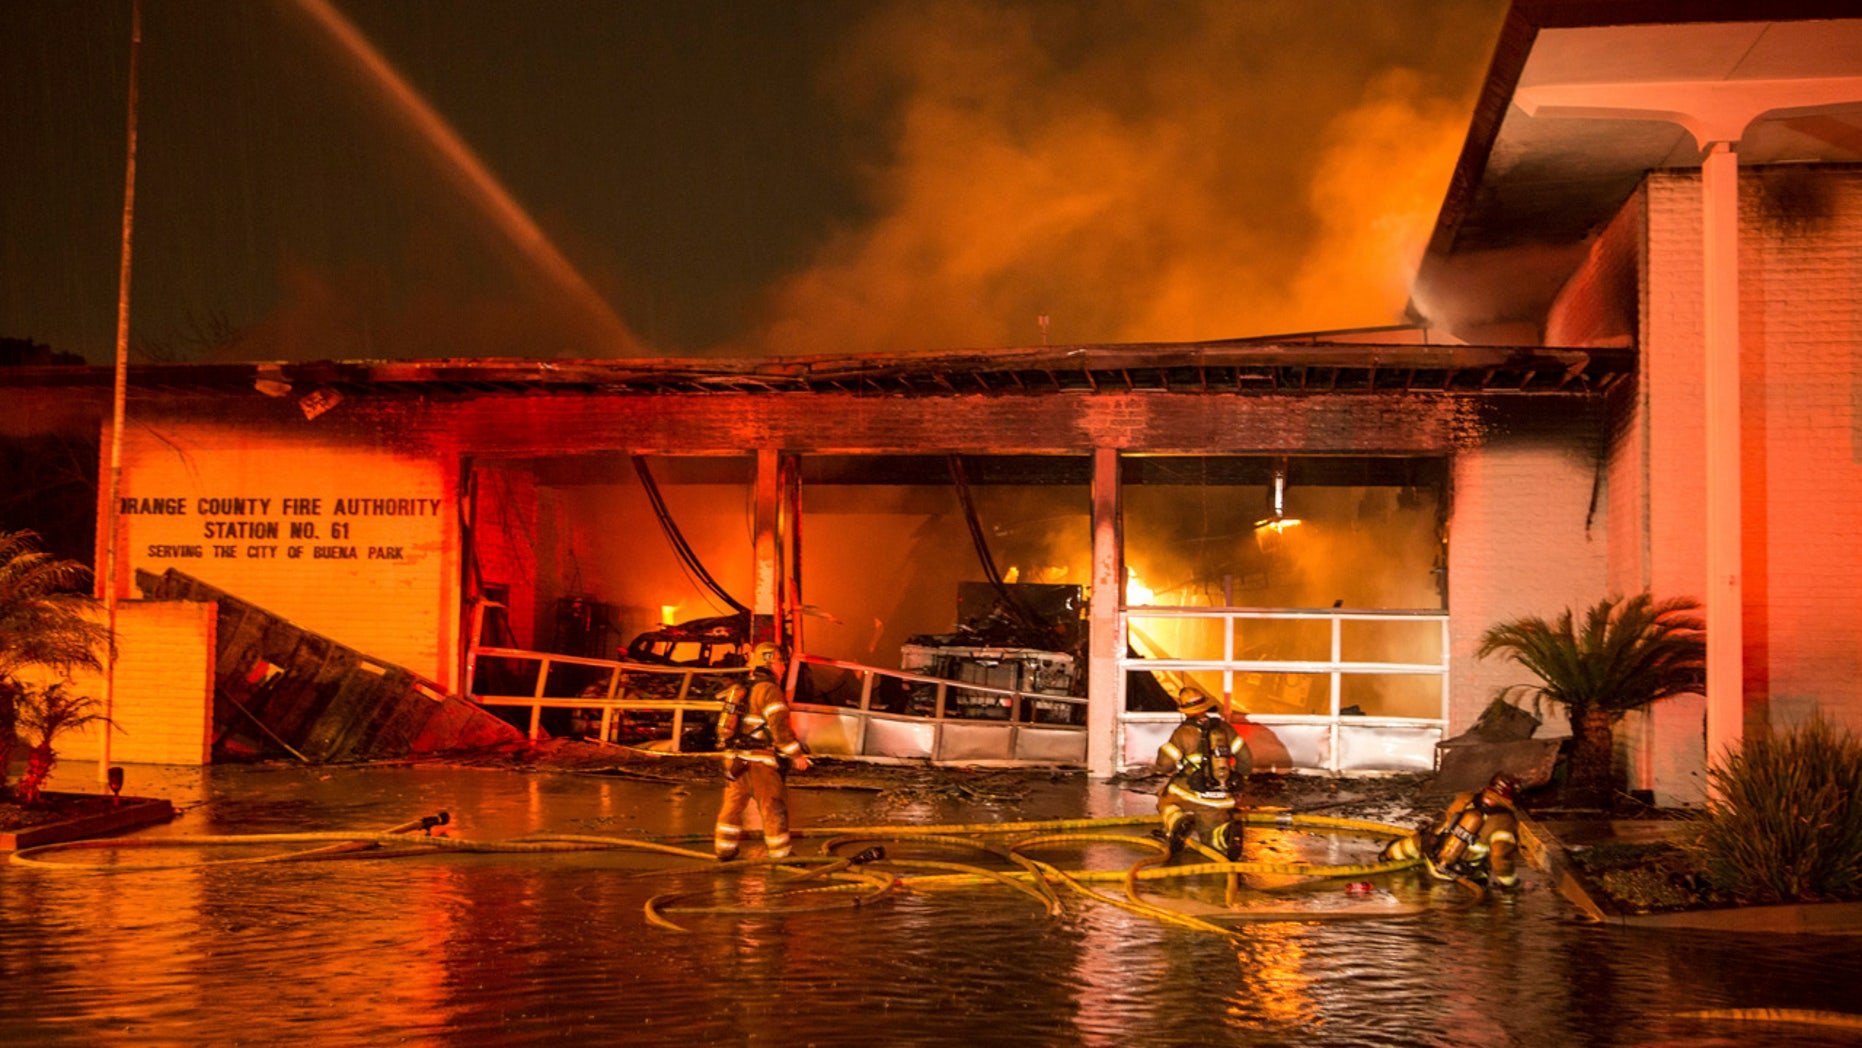 Firefighters battle a two alarm fire ripped through Orange County Fire Authority Station 6 in Buena Park, Calif. on Thursday, Jan. 12, 2017.